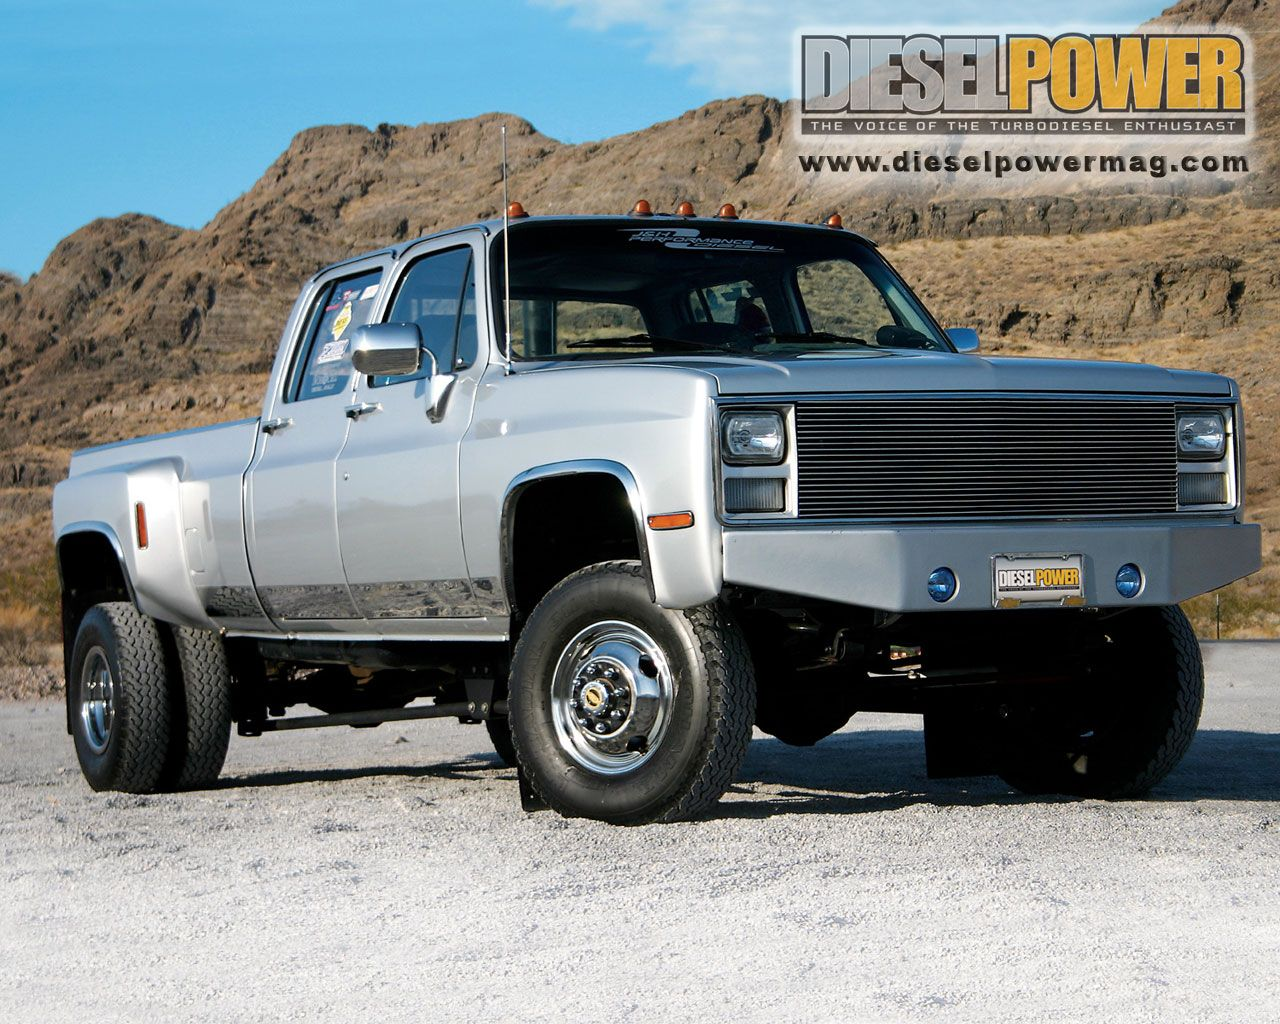 small resolution of 1980 chevy silverado dually 4x4 6 6l duramax diesel 6 speed manual trans 31 to 33 tires